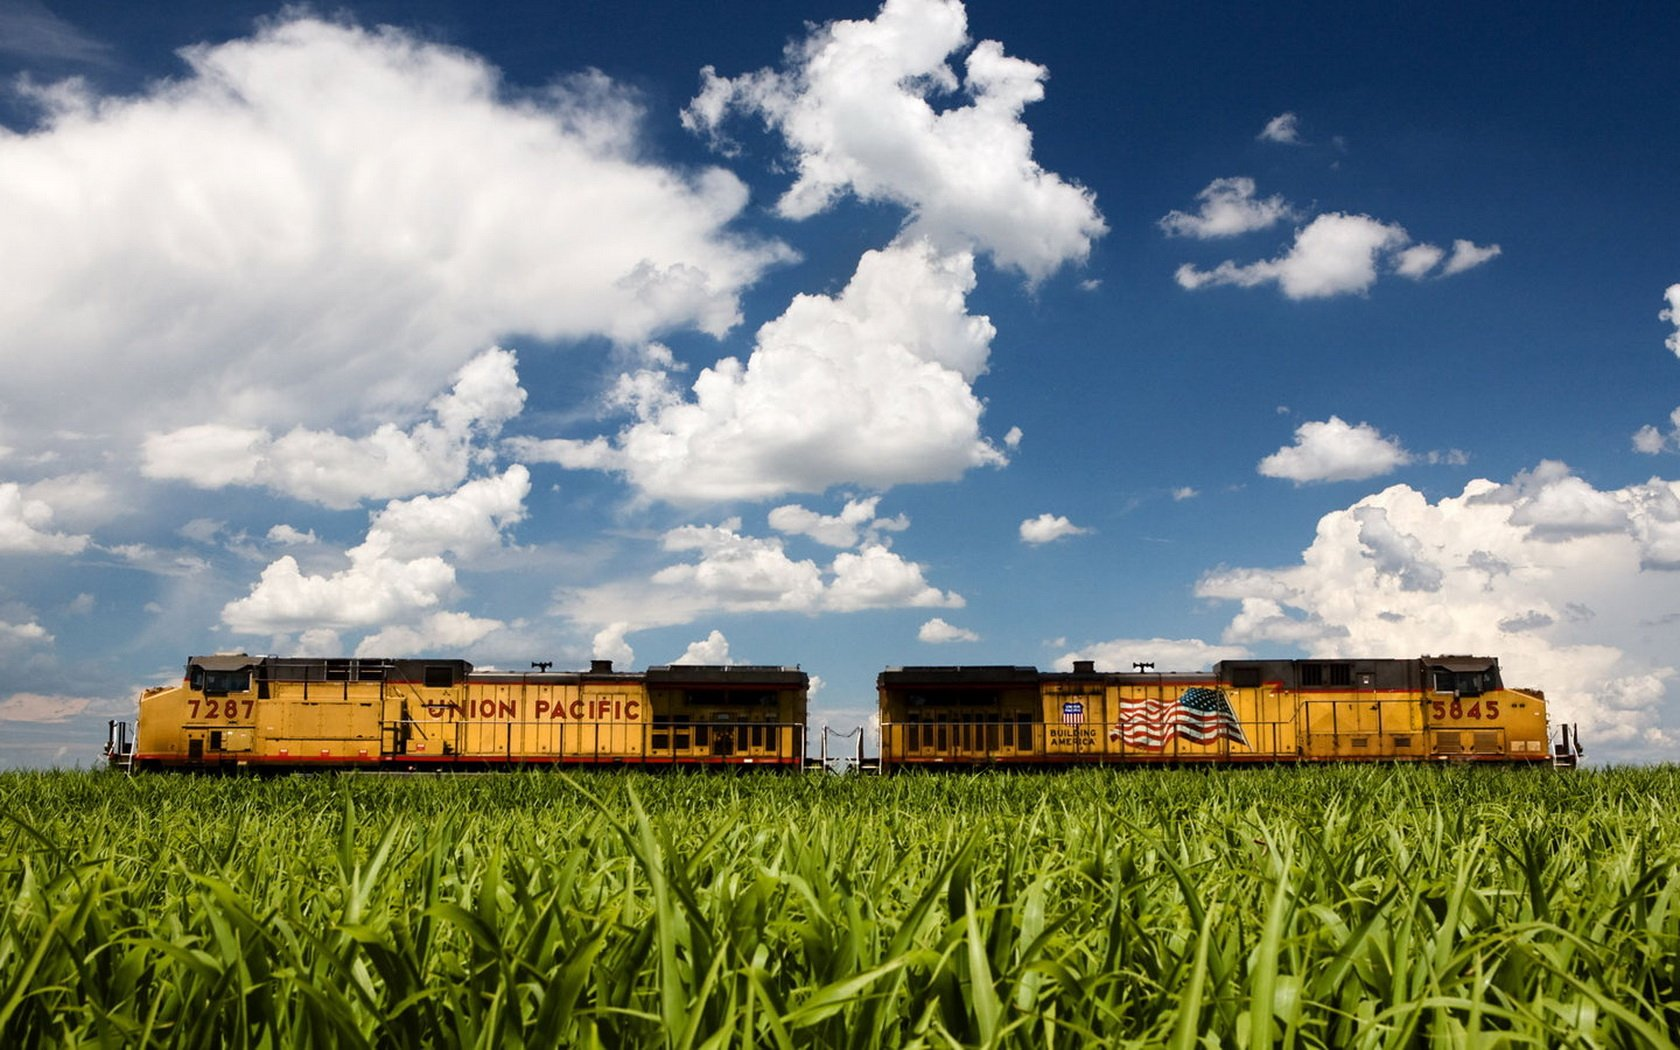 American train wallpapers and images   wallpapers pictures photos 1680x1050